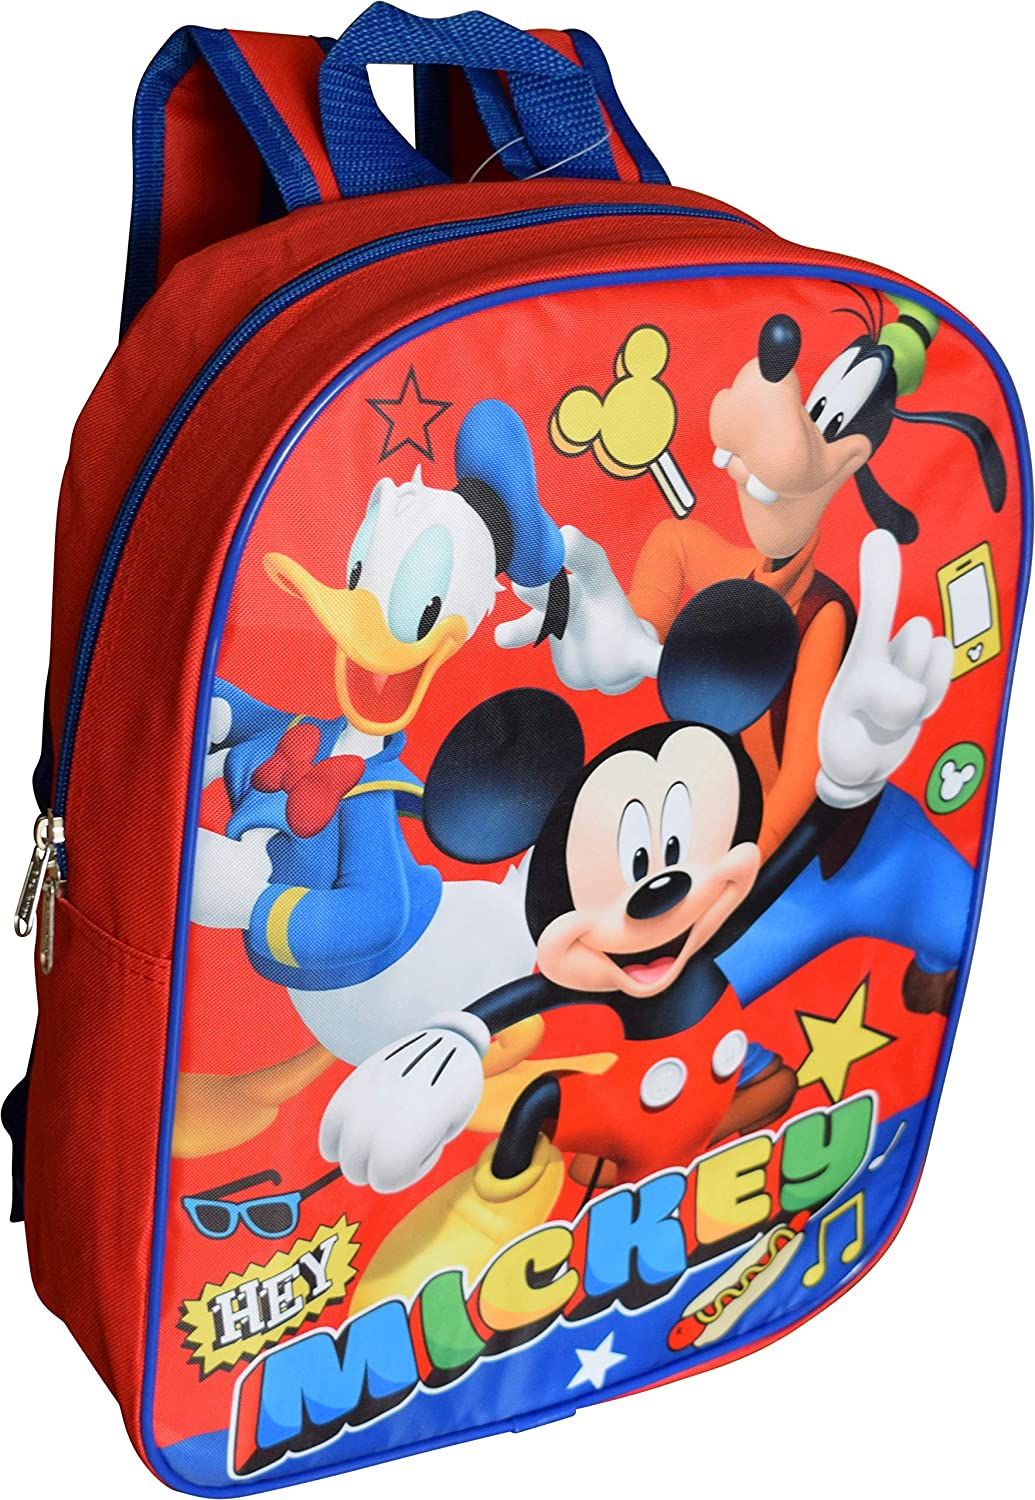 Disney Mickey Mouse 15 Backpack Red-Blue